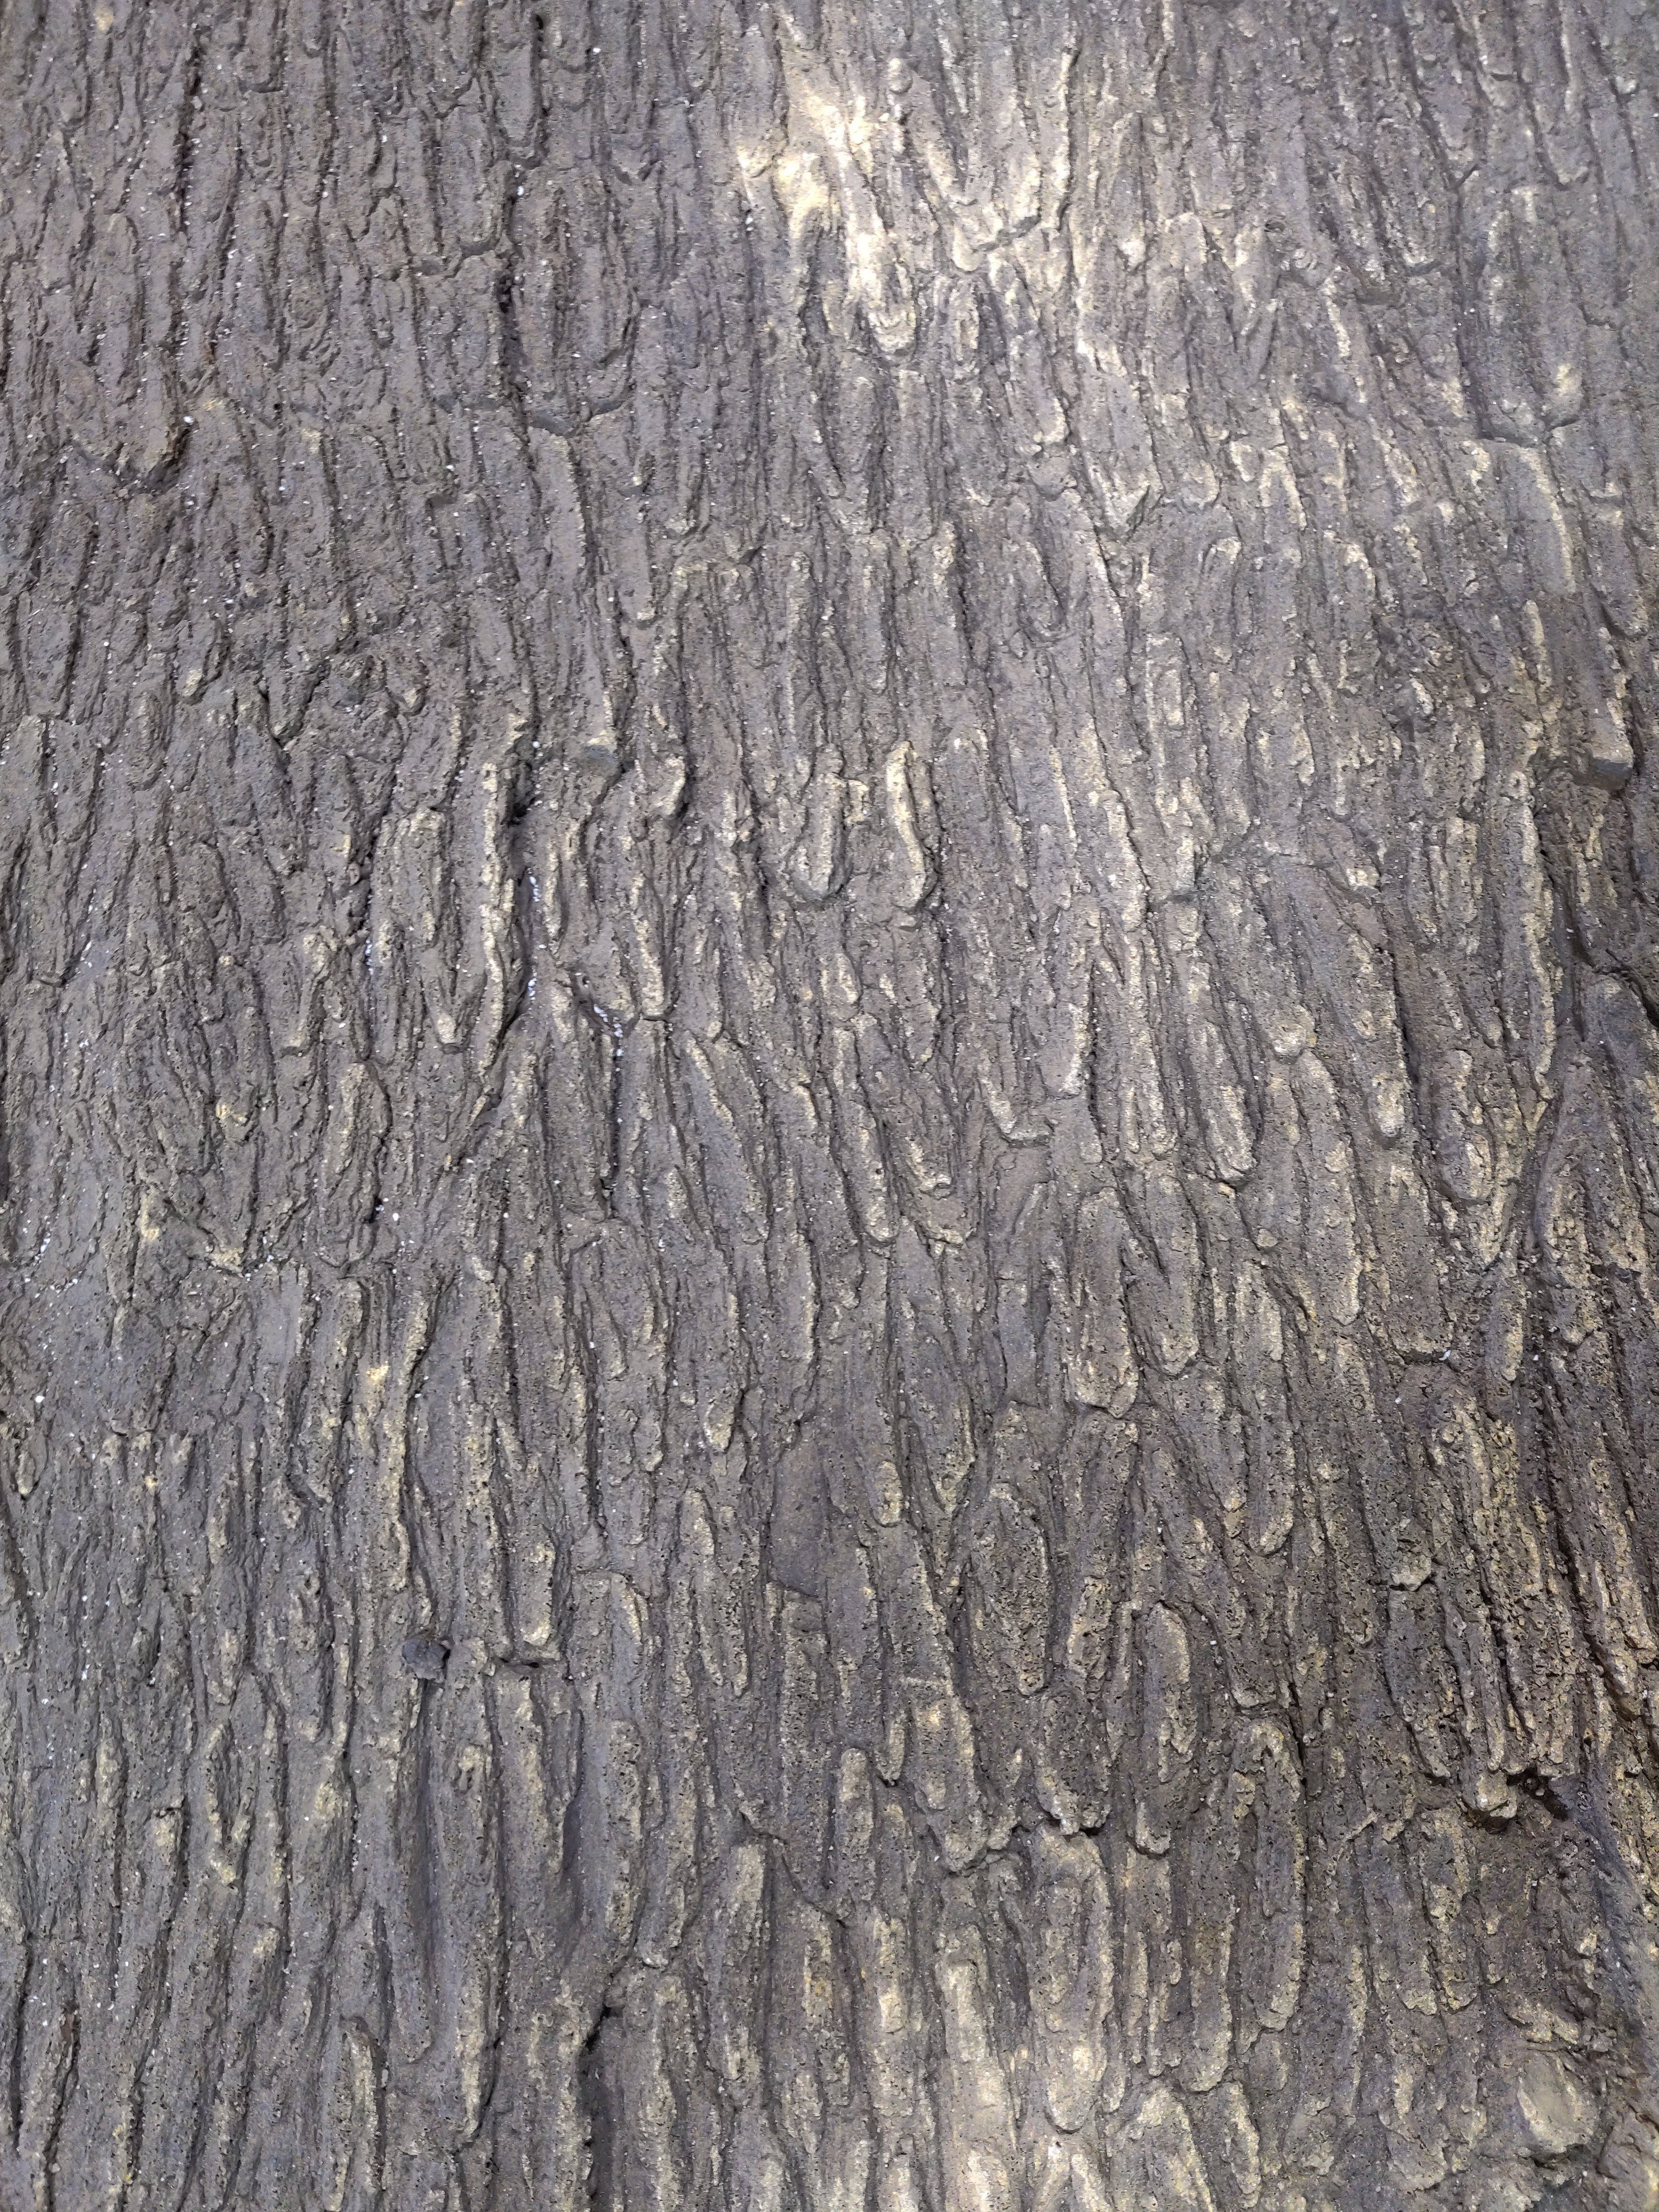 24 x 24 Bark Background (Flexible Material Only)